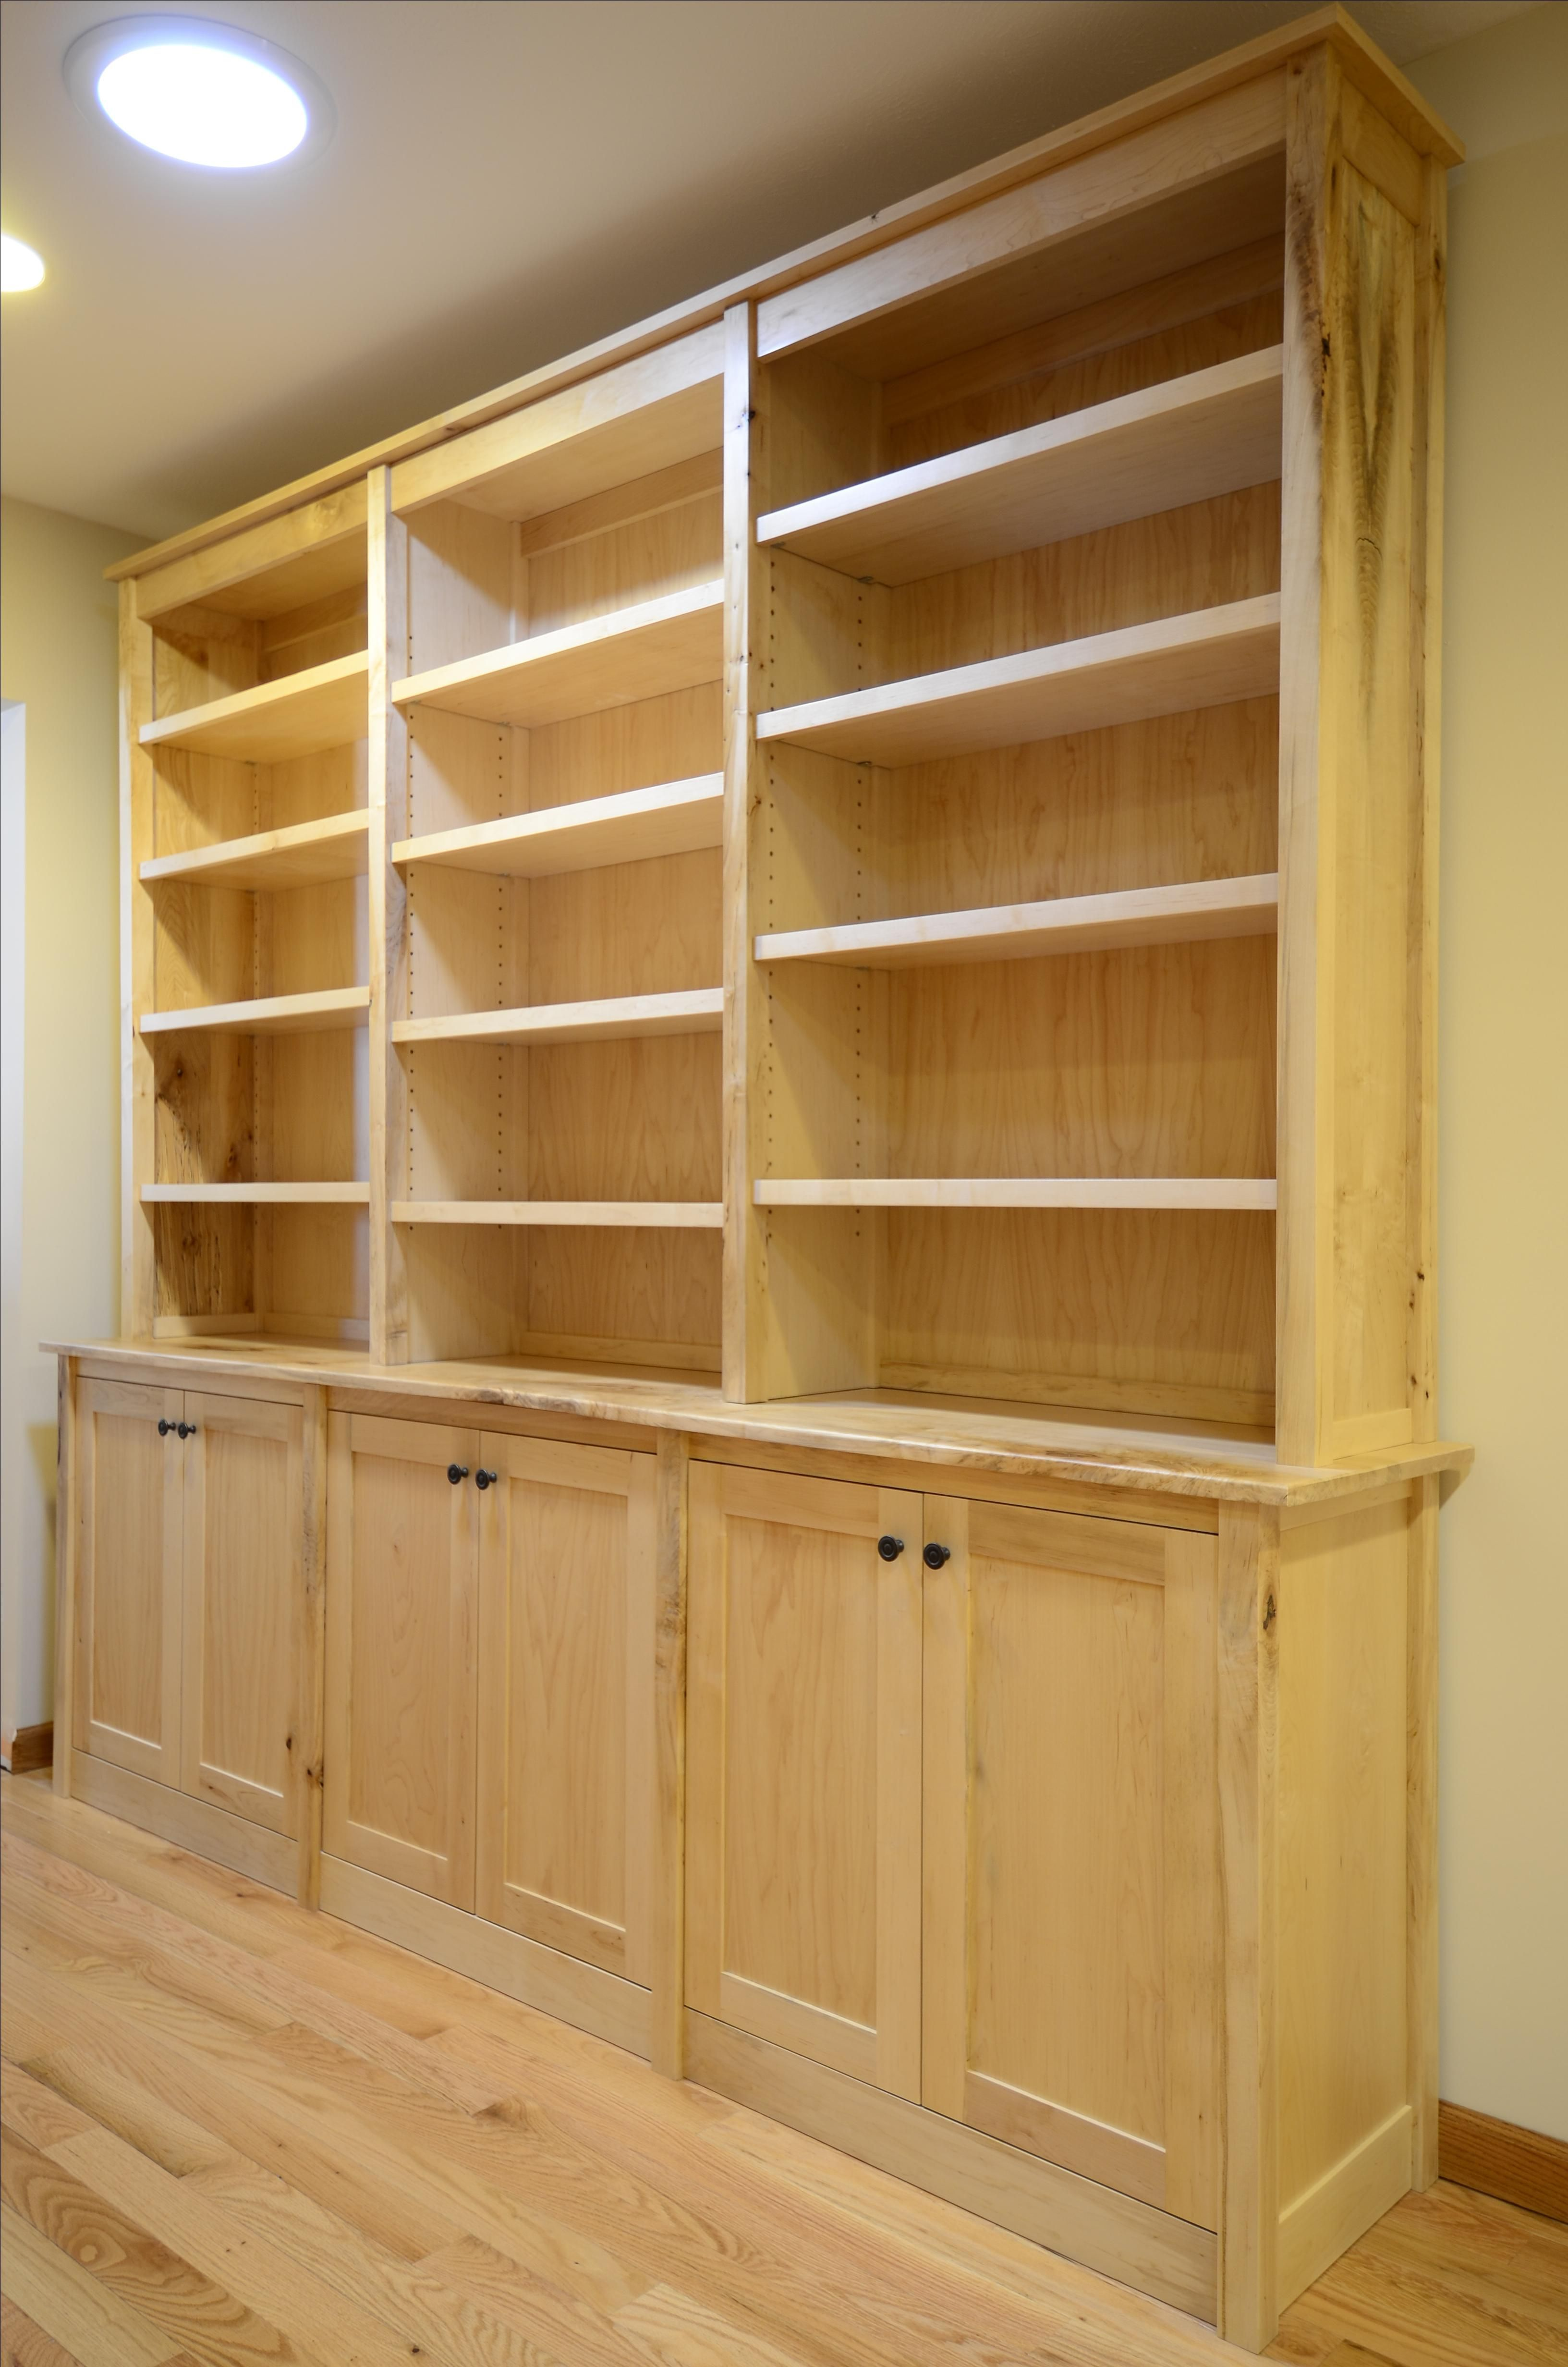 Custom Made Maple Bookcases With Images Bookcase Shaker Style Doors Adjustable Shelving